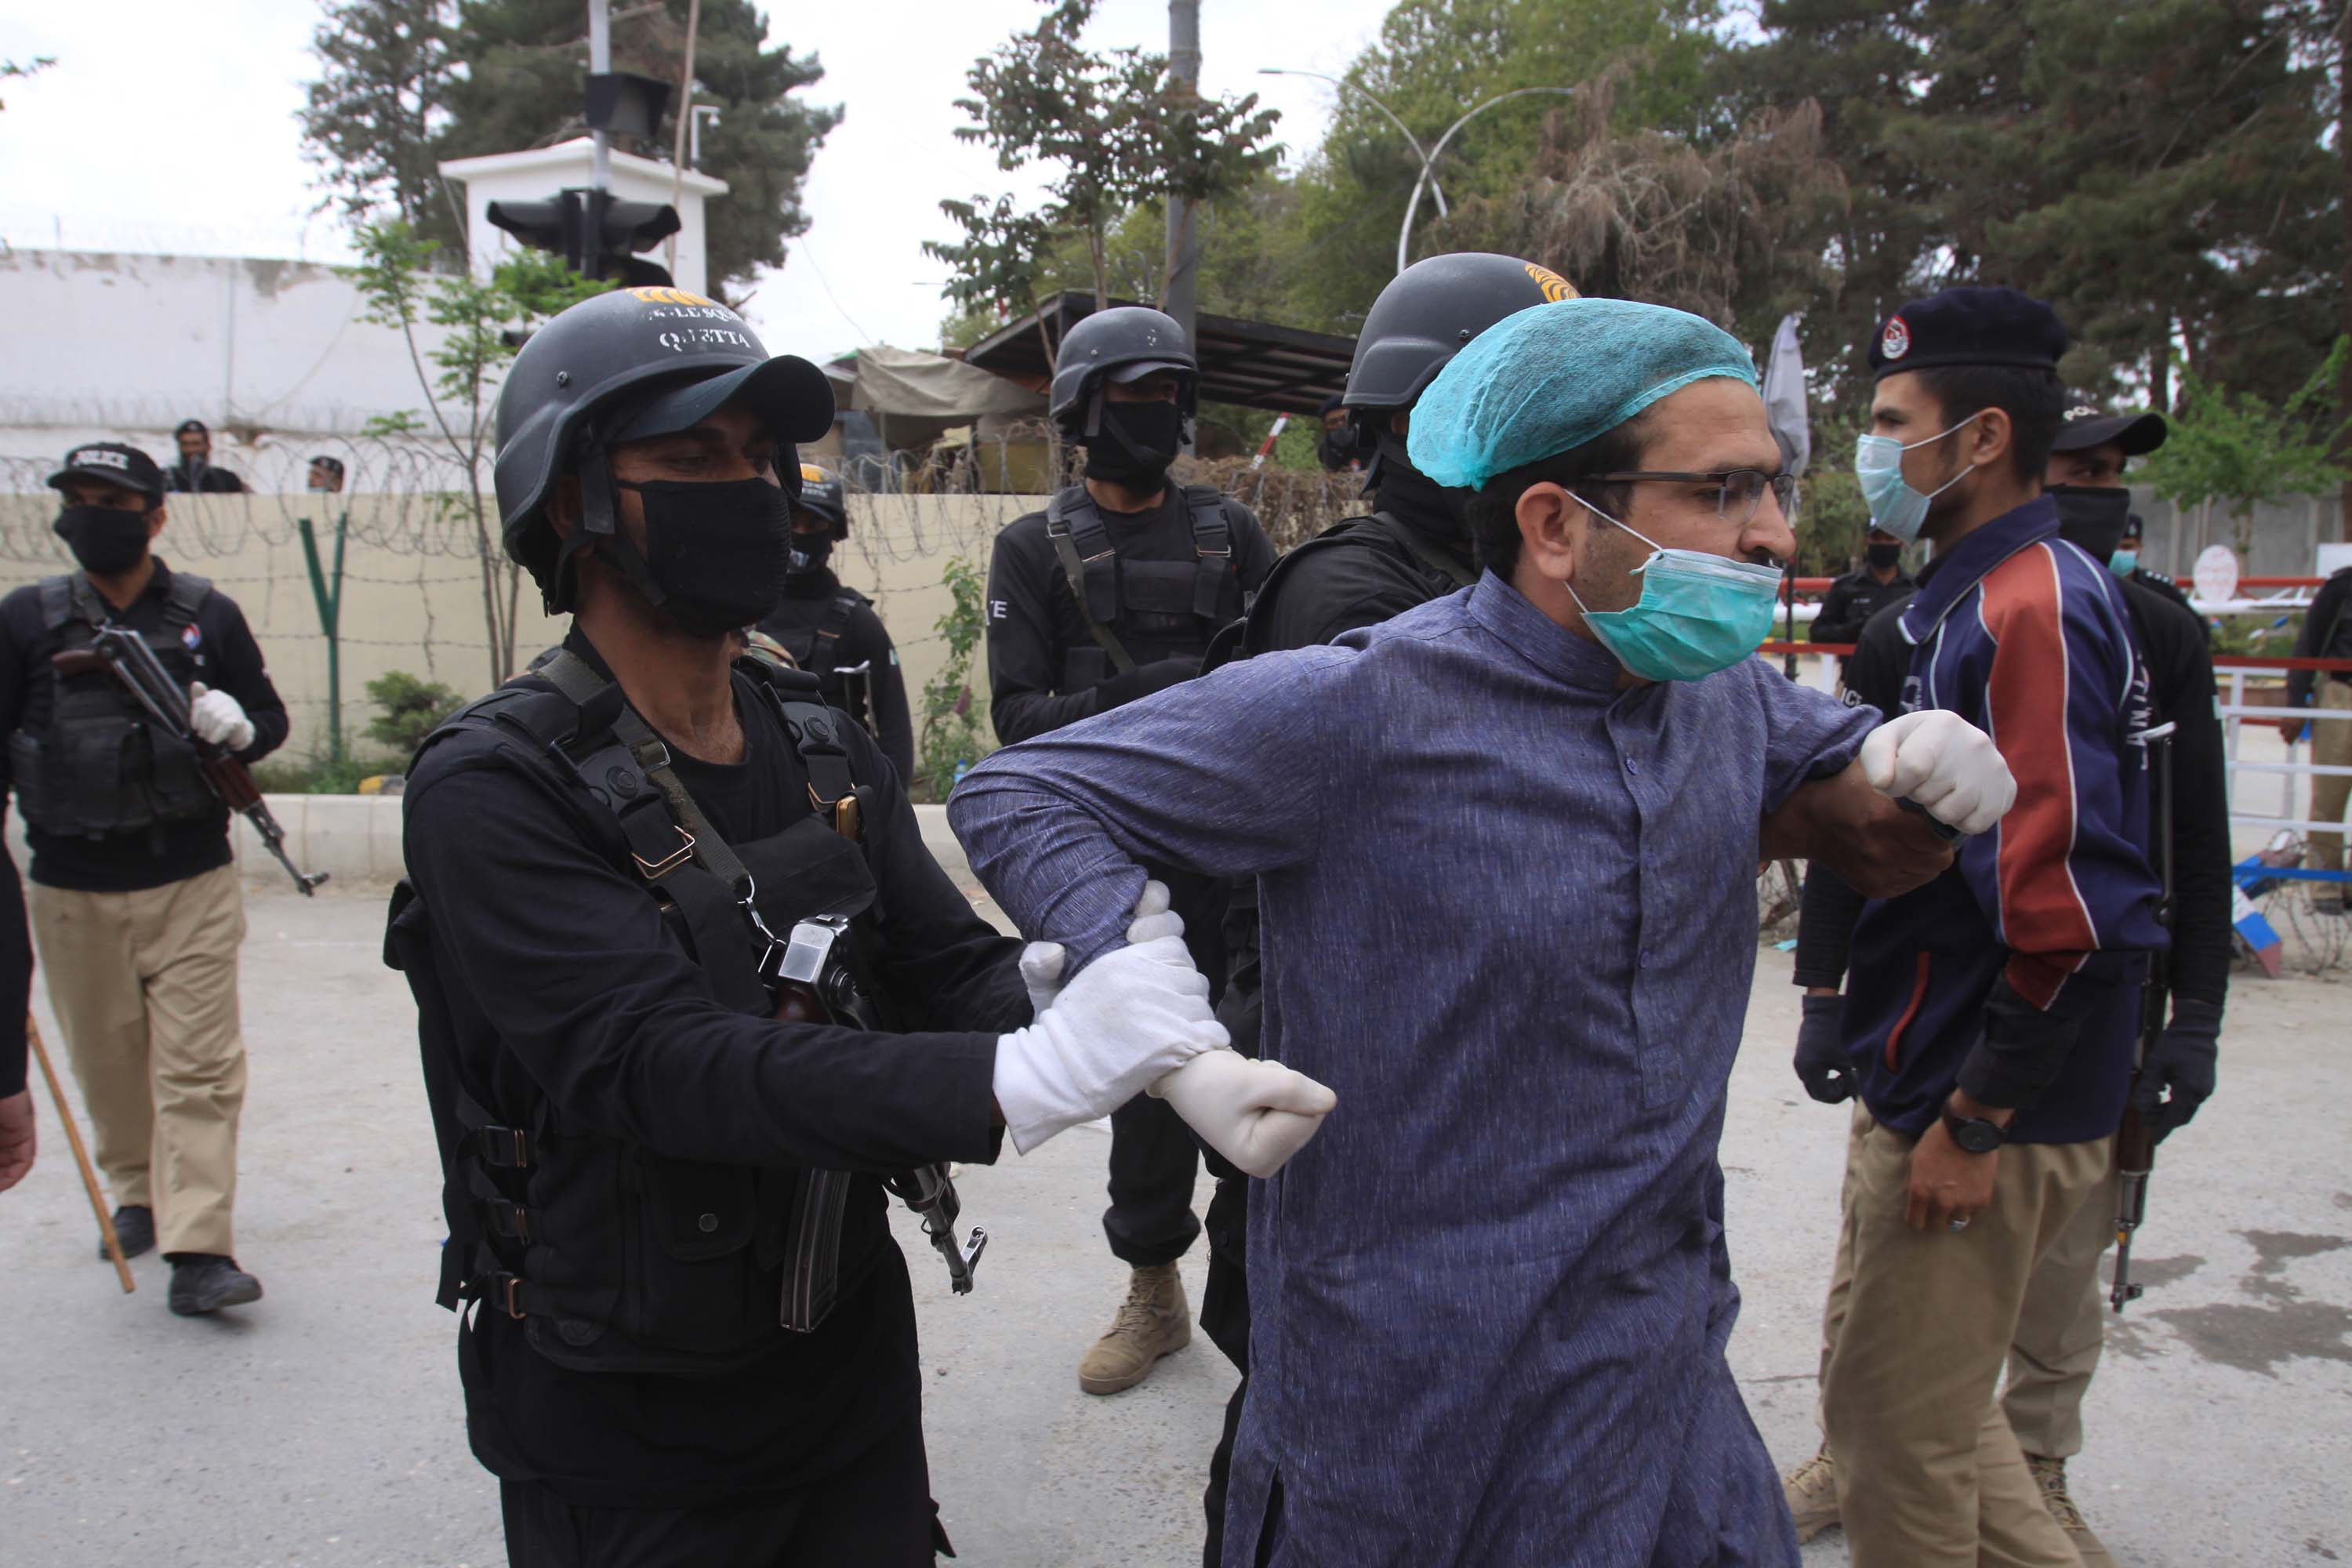 Police detain medical personnel demanding better facilities and personal protective equipment while caring for coronavirus patients in Quetta, Pakistan, on April 6.